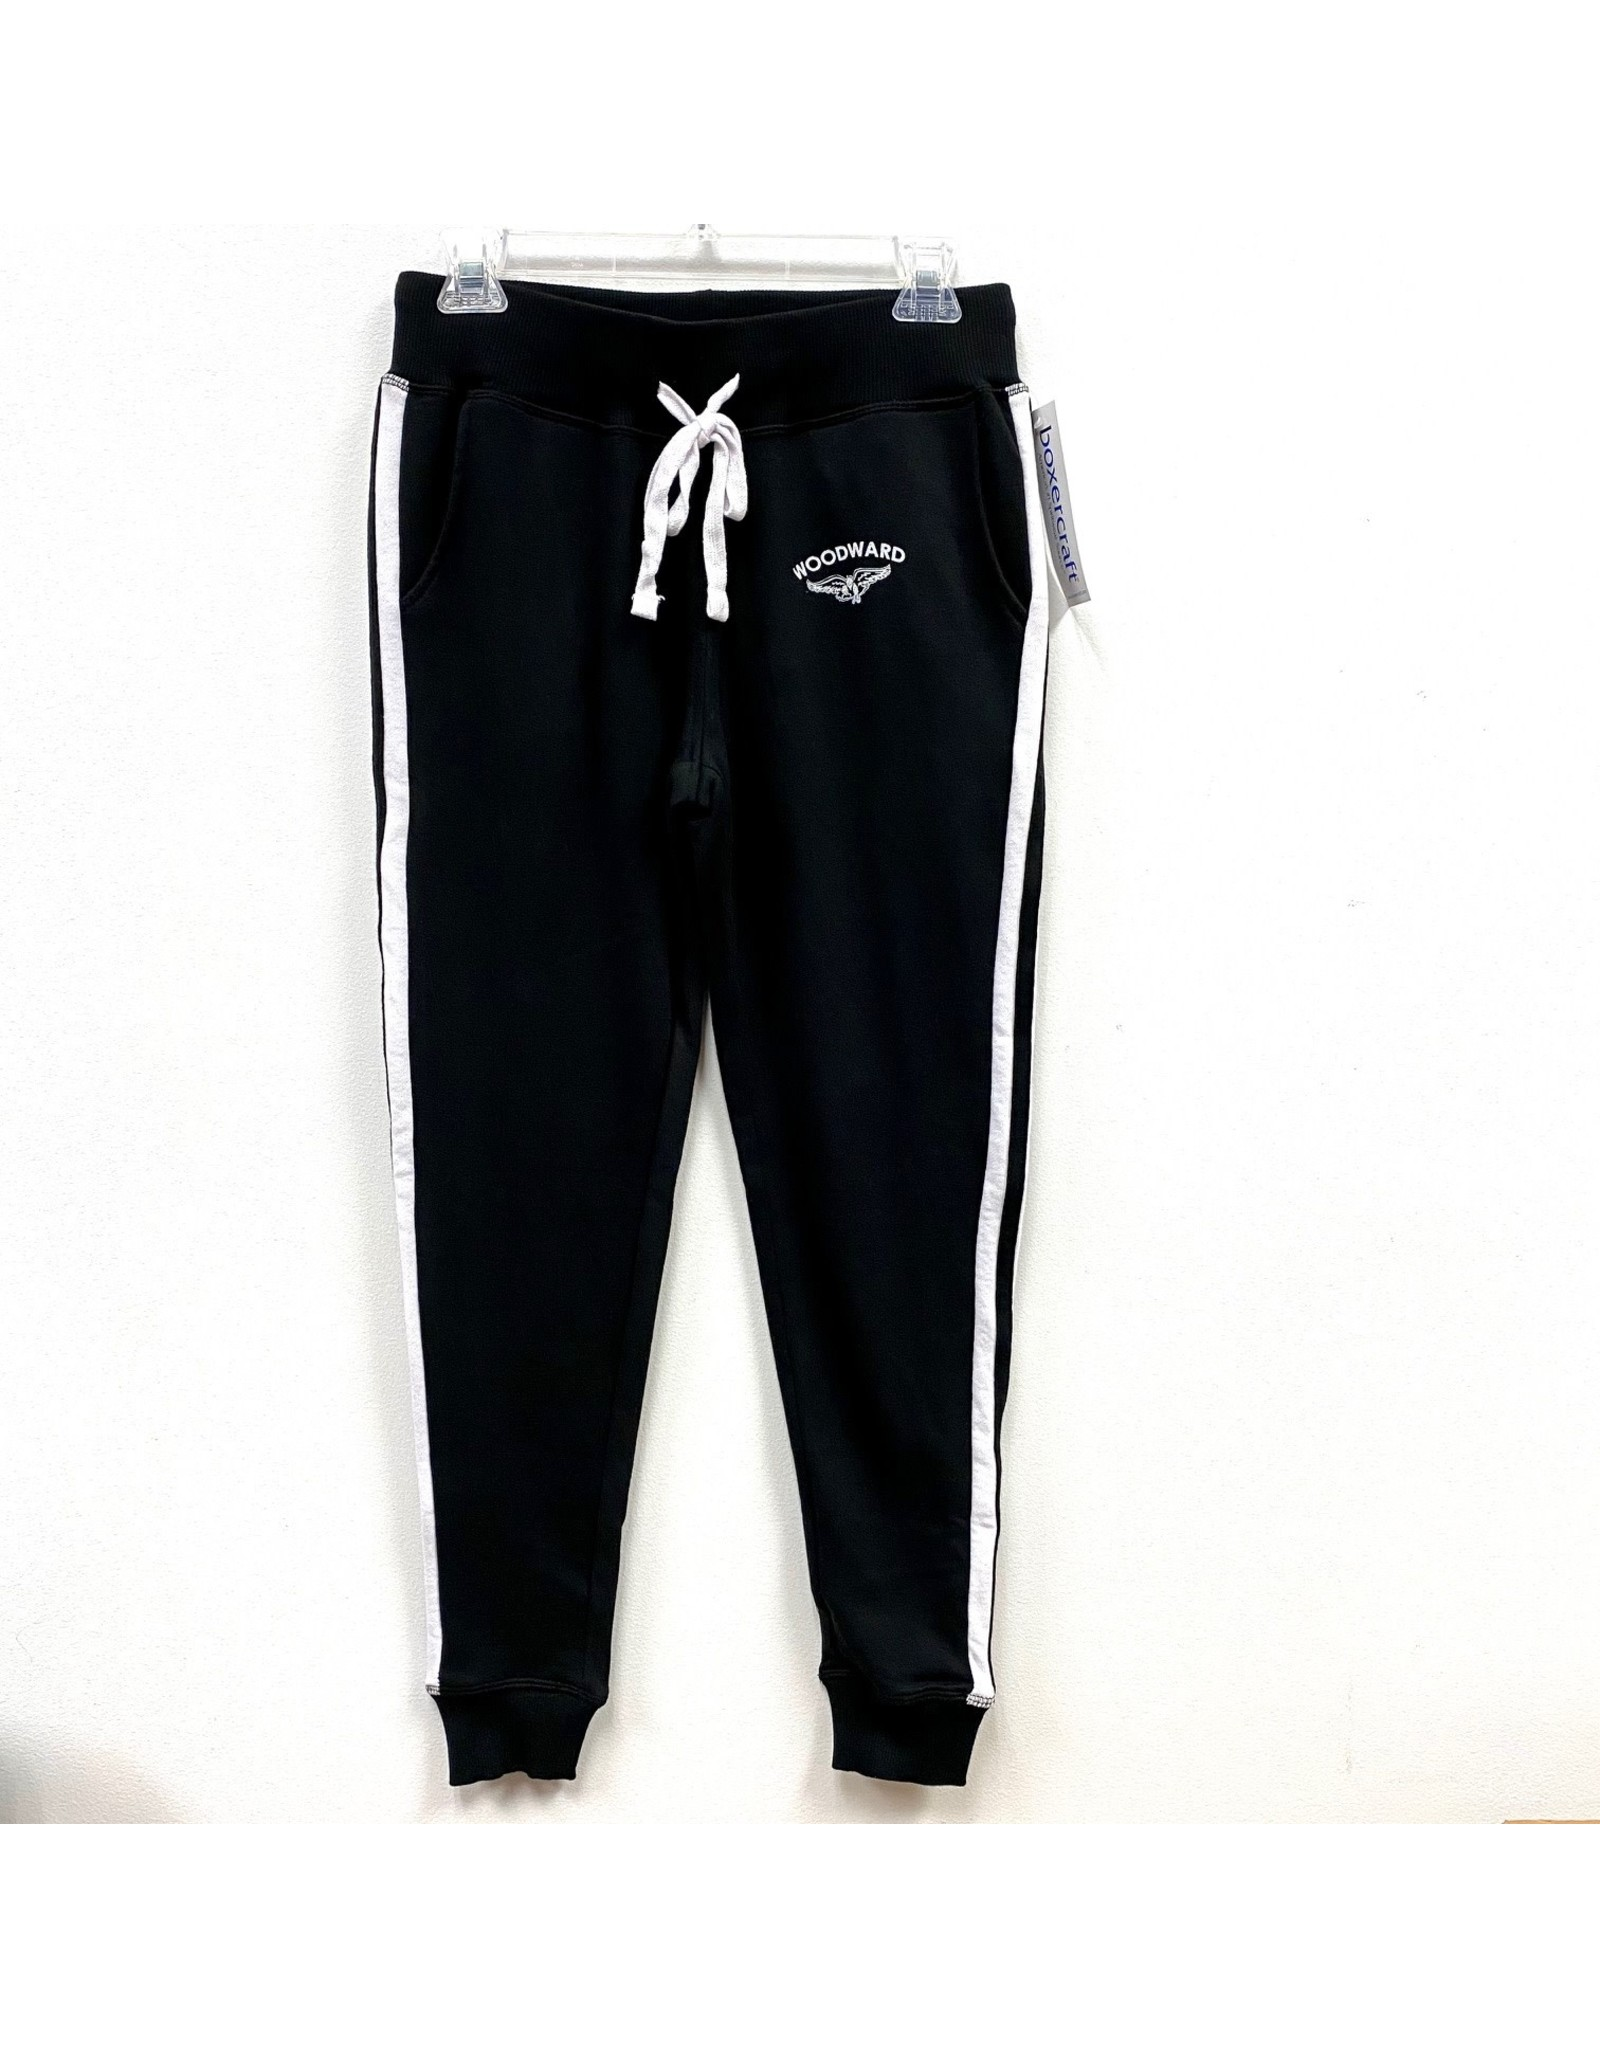 Boxercraft Ladies Jogger Sweatpants in Black